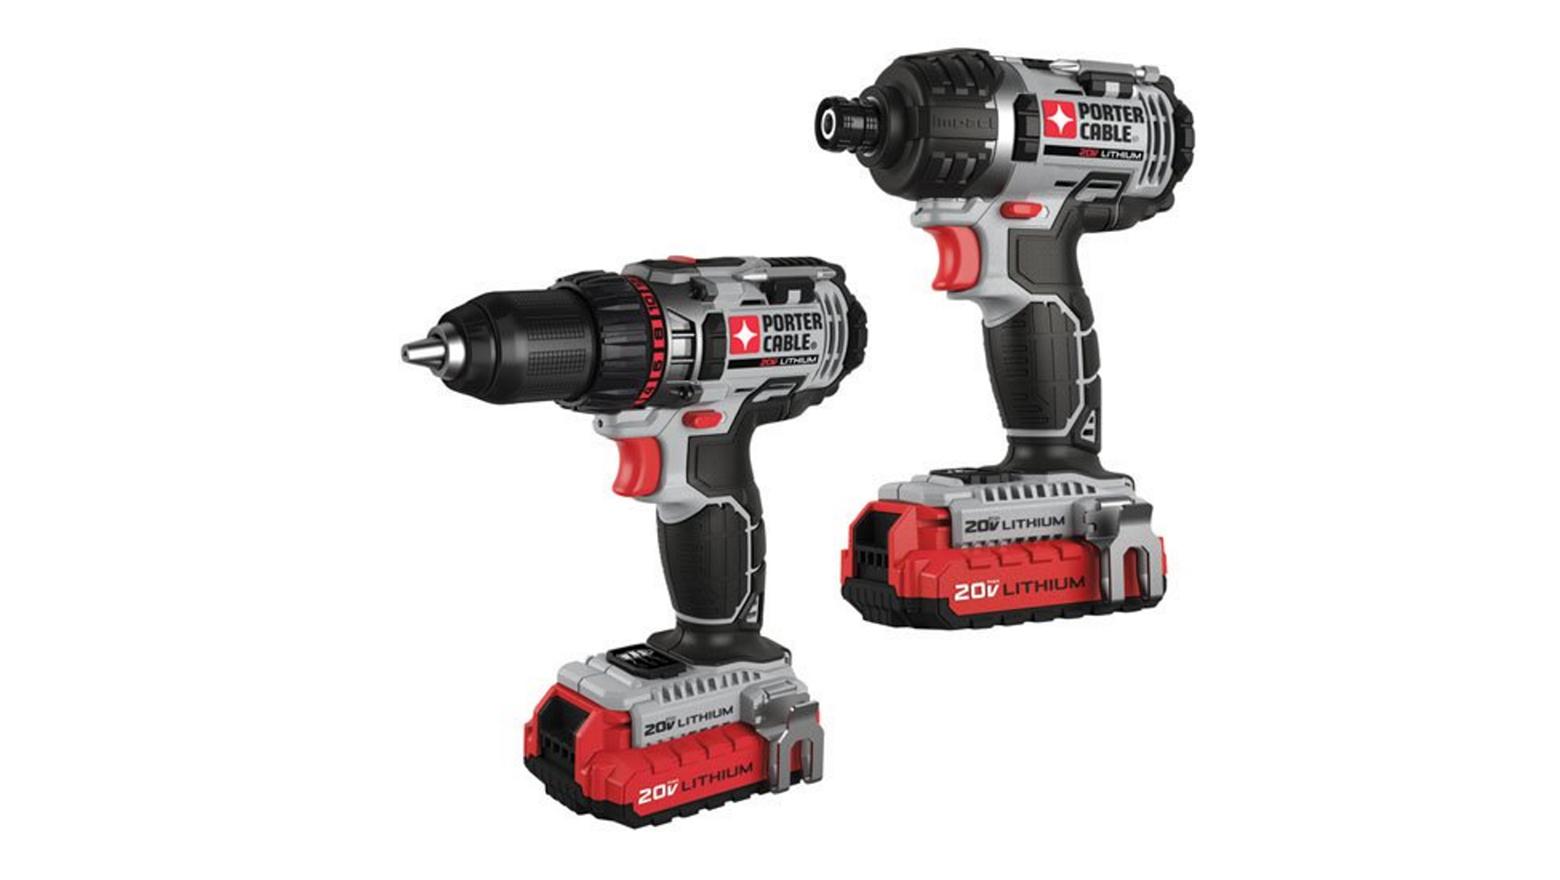 Amazon, cyber monday, cyber monday sales, cyber monday deals, tools, power tools, hand tools, woodworking tools, drill driver, porter cable, cordless drill, impact drill